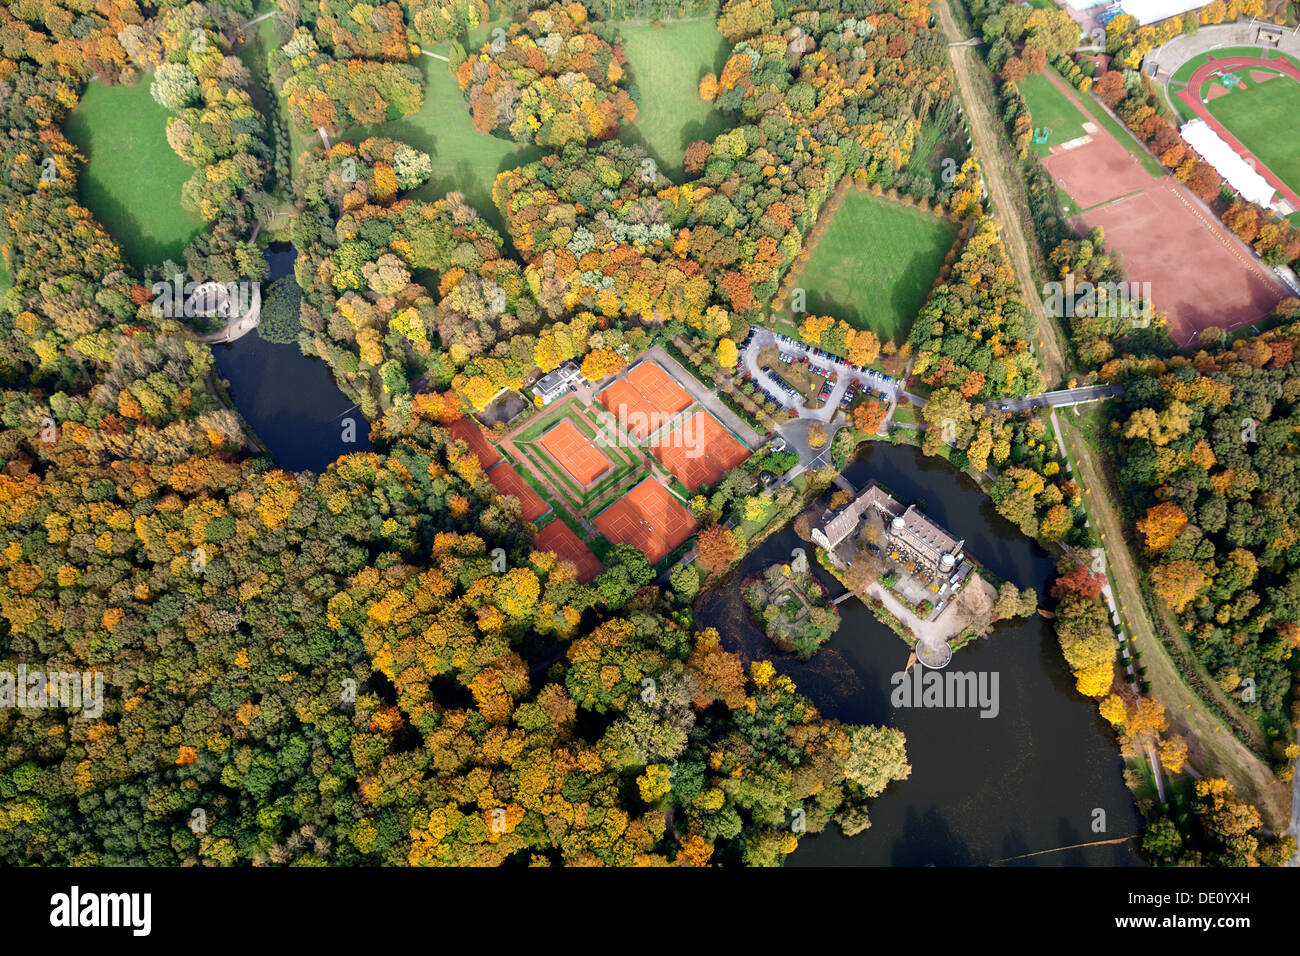 Aerial view, tennis clubhouse, Tennisclub Haus Wittringen TCHW e.V., Schloss Wittringen Palace with its gardens and urban forest - Stock Image